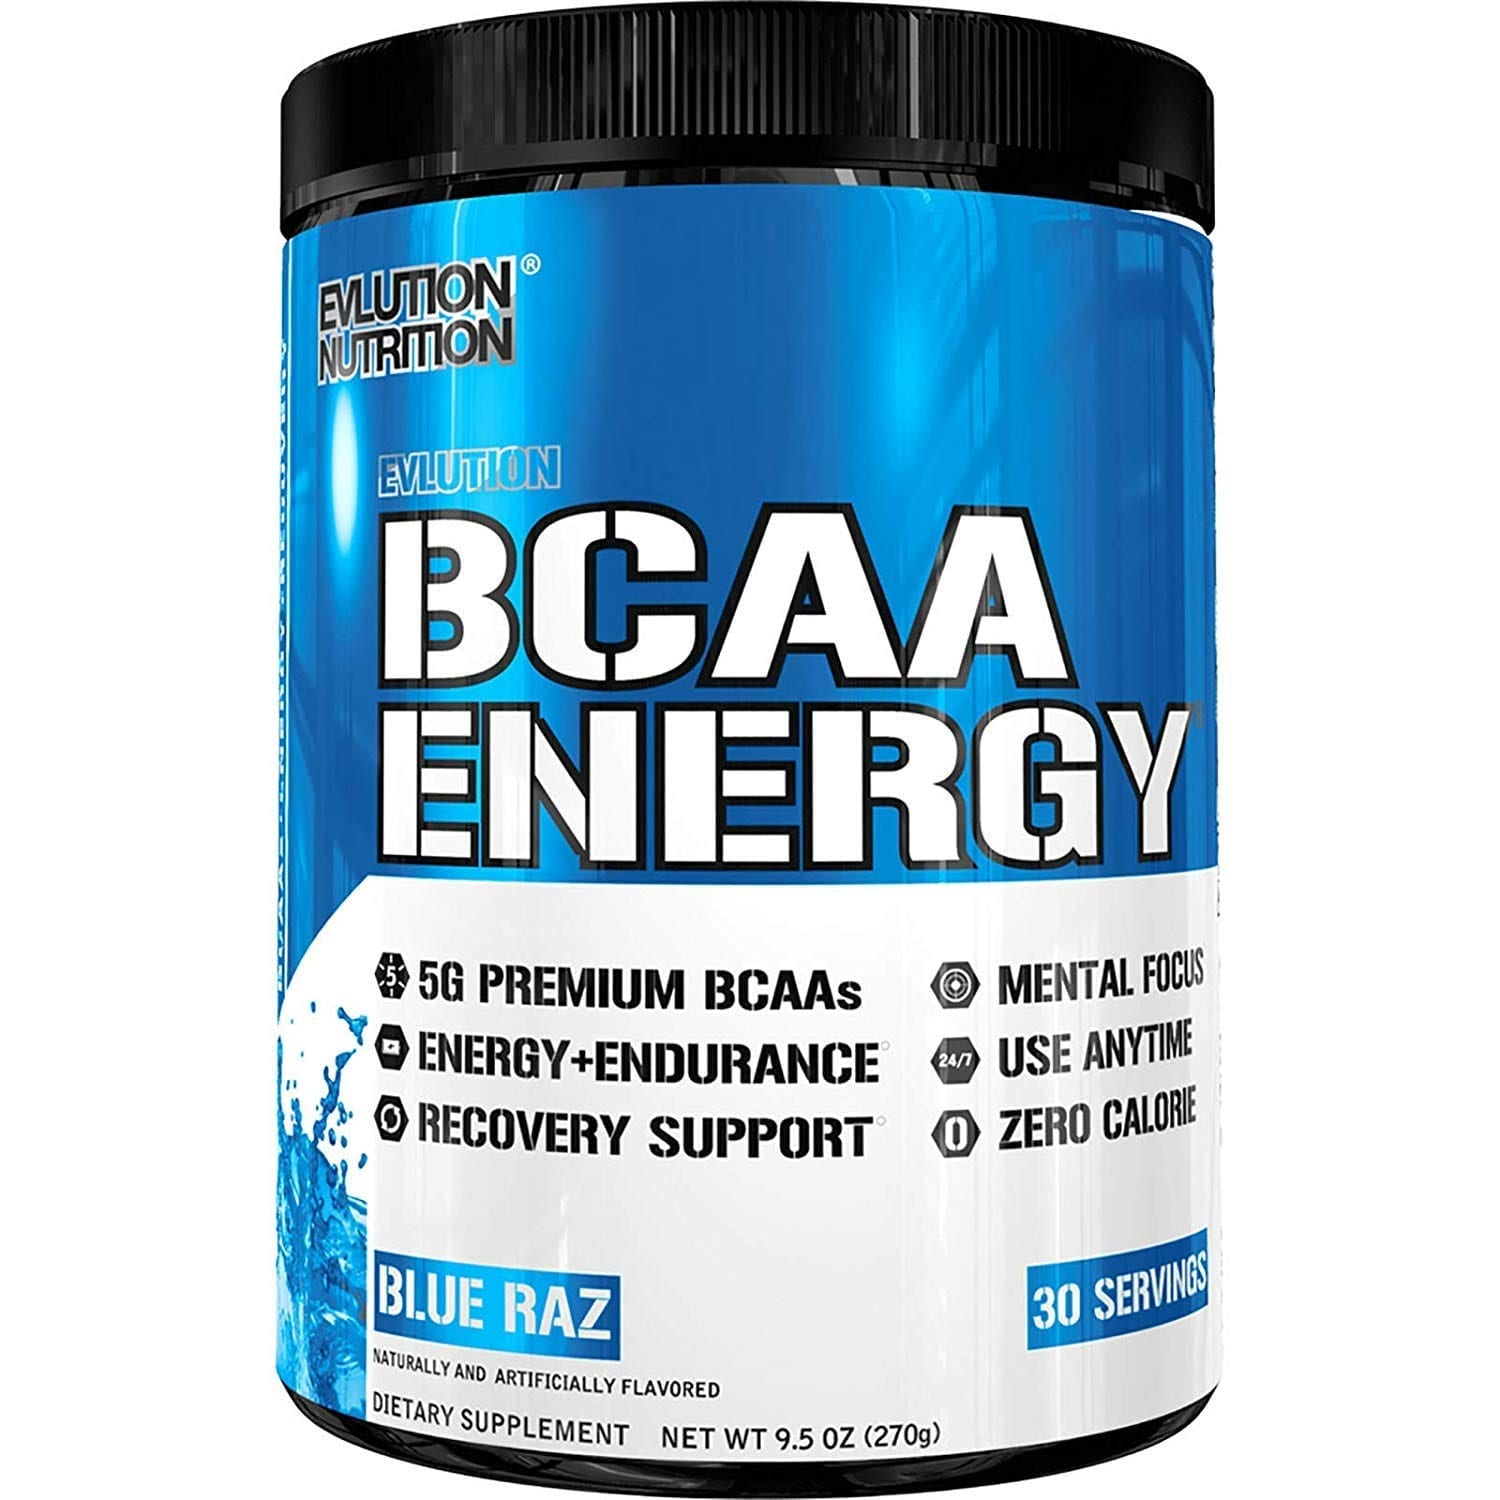 Evlution Nutrition BCAA Energy Review – Should You Buy It Or Not?